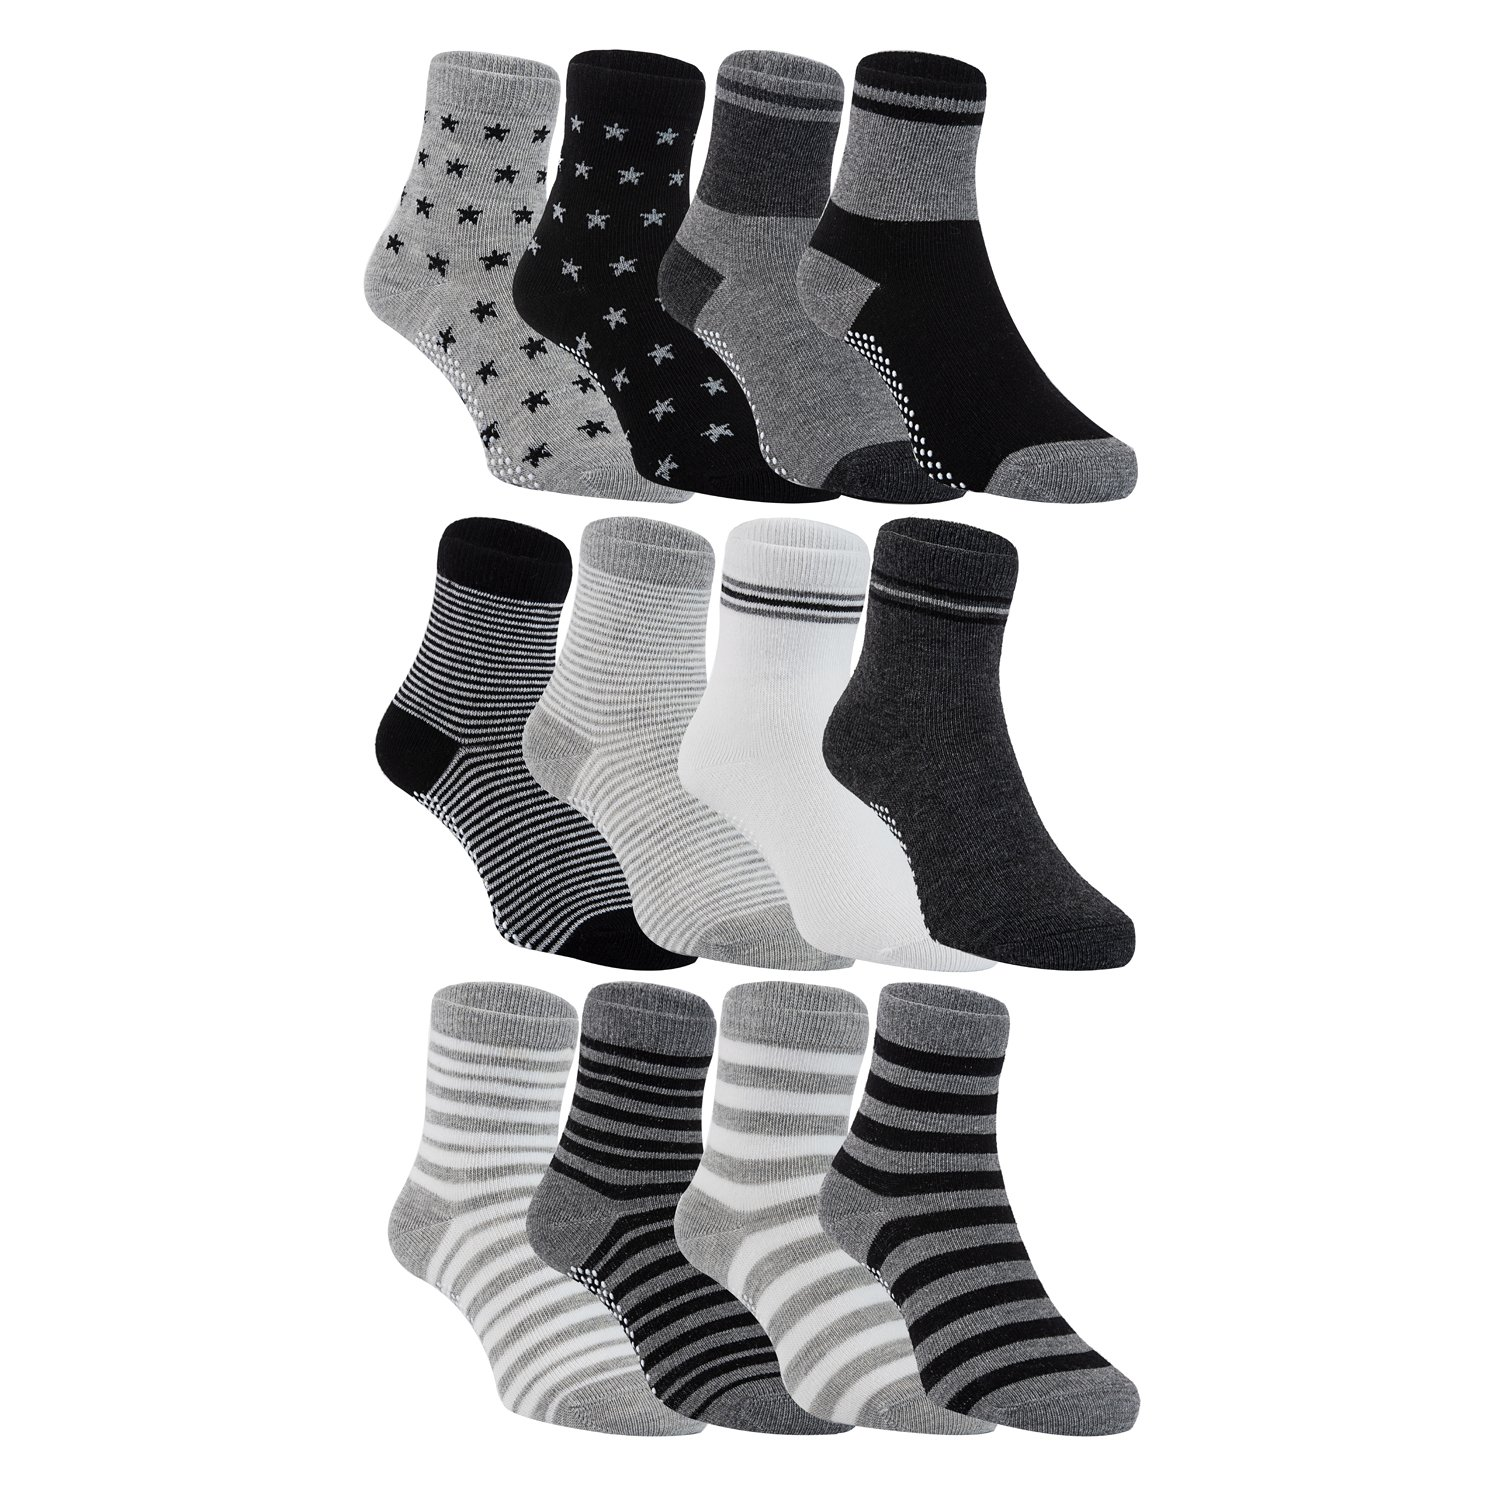 Lian LifeStyle Baby Boy's 12 Pairs Pack Non-Skid Cotton Socks One Size Multiple Color